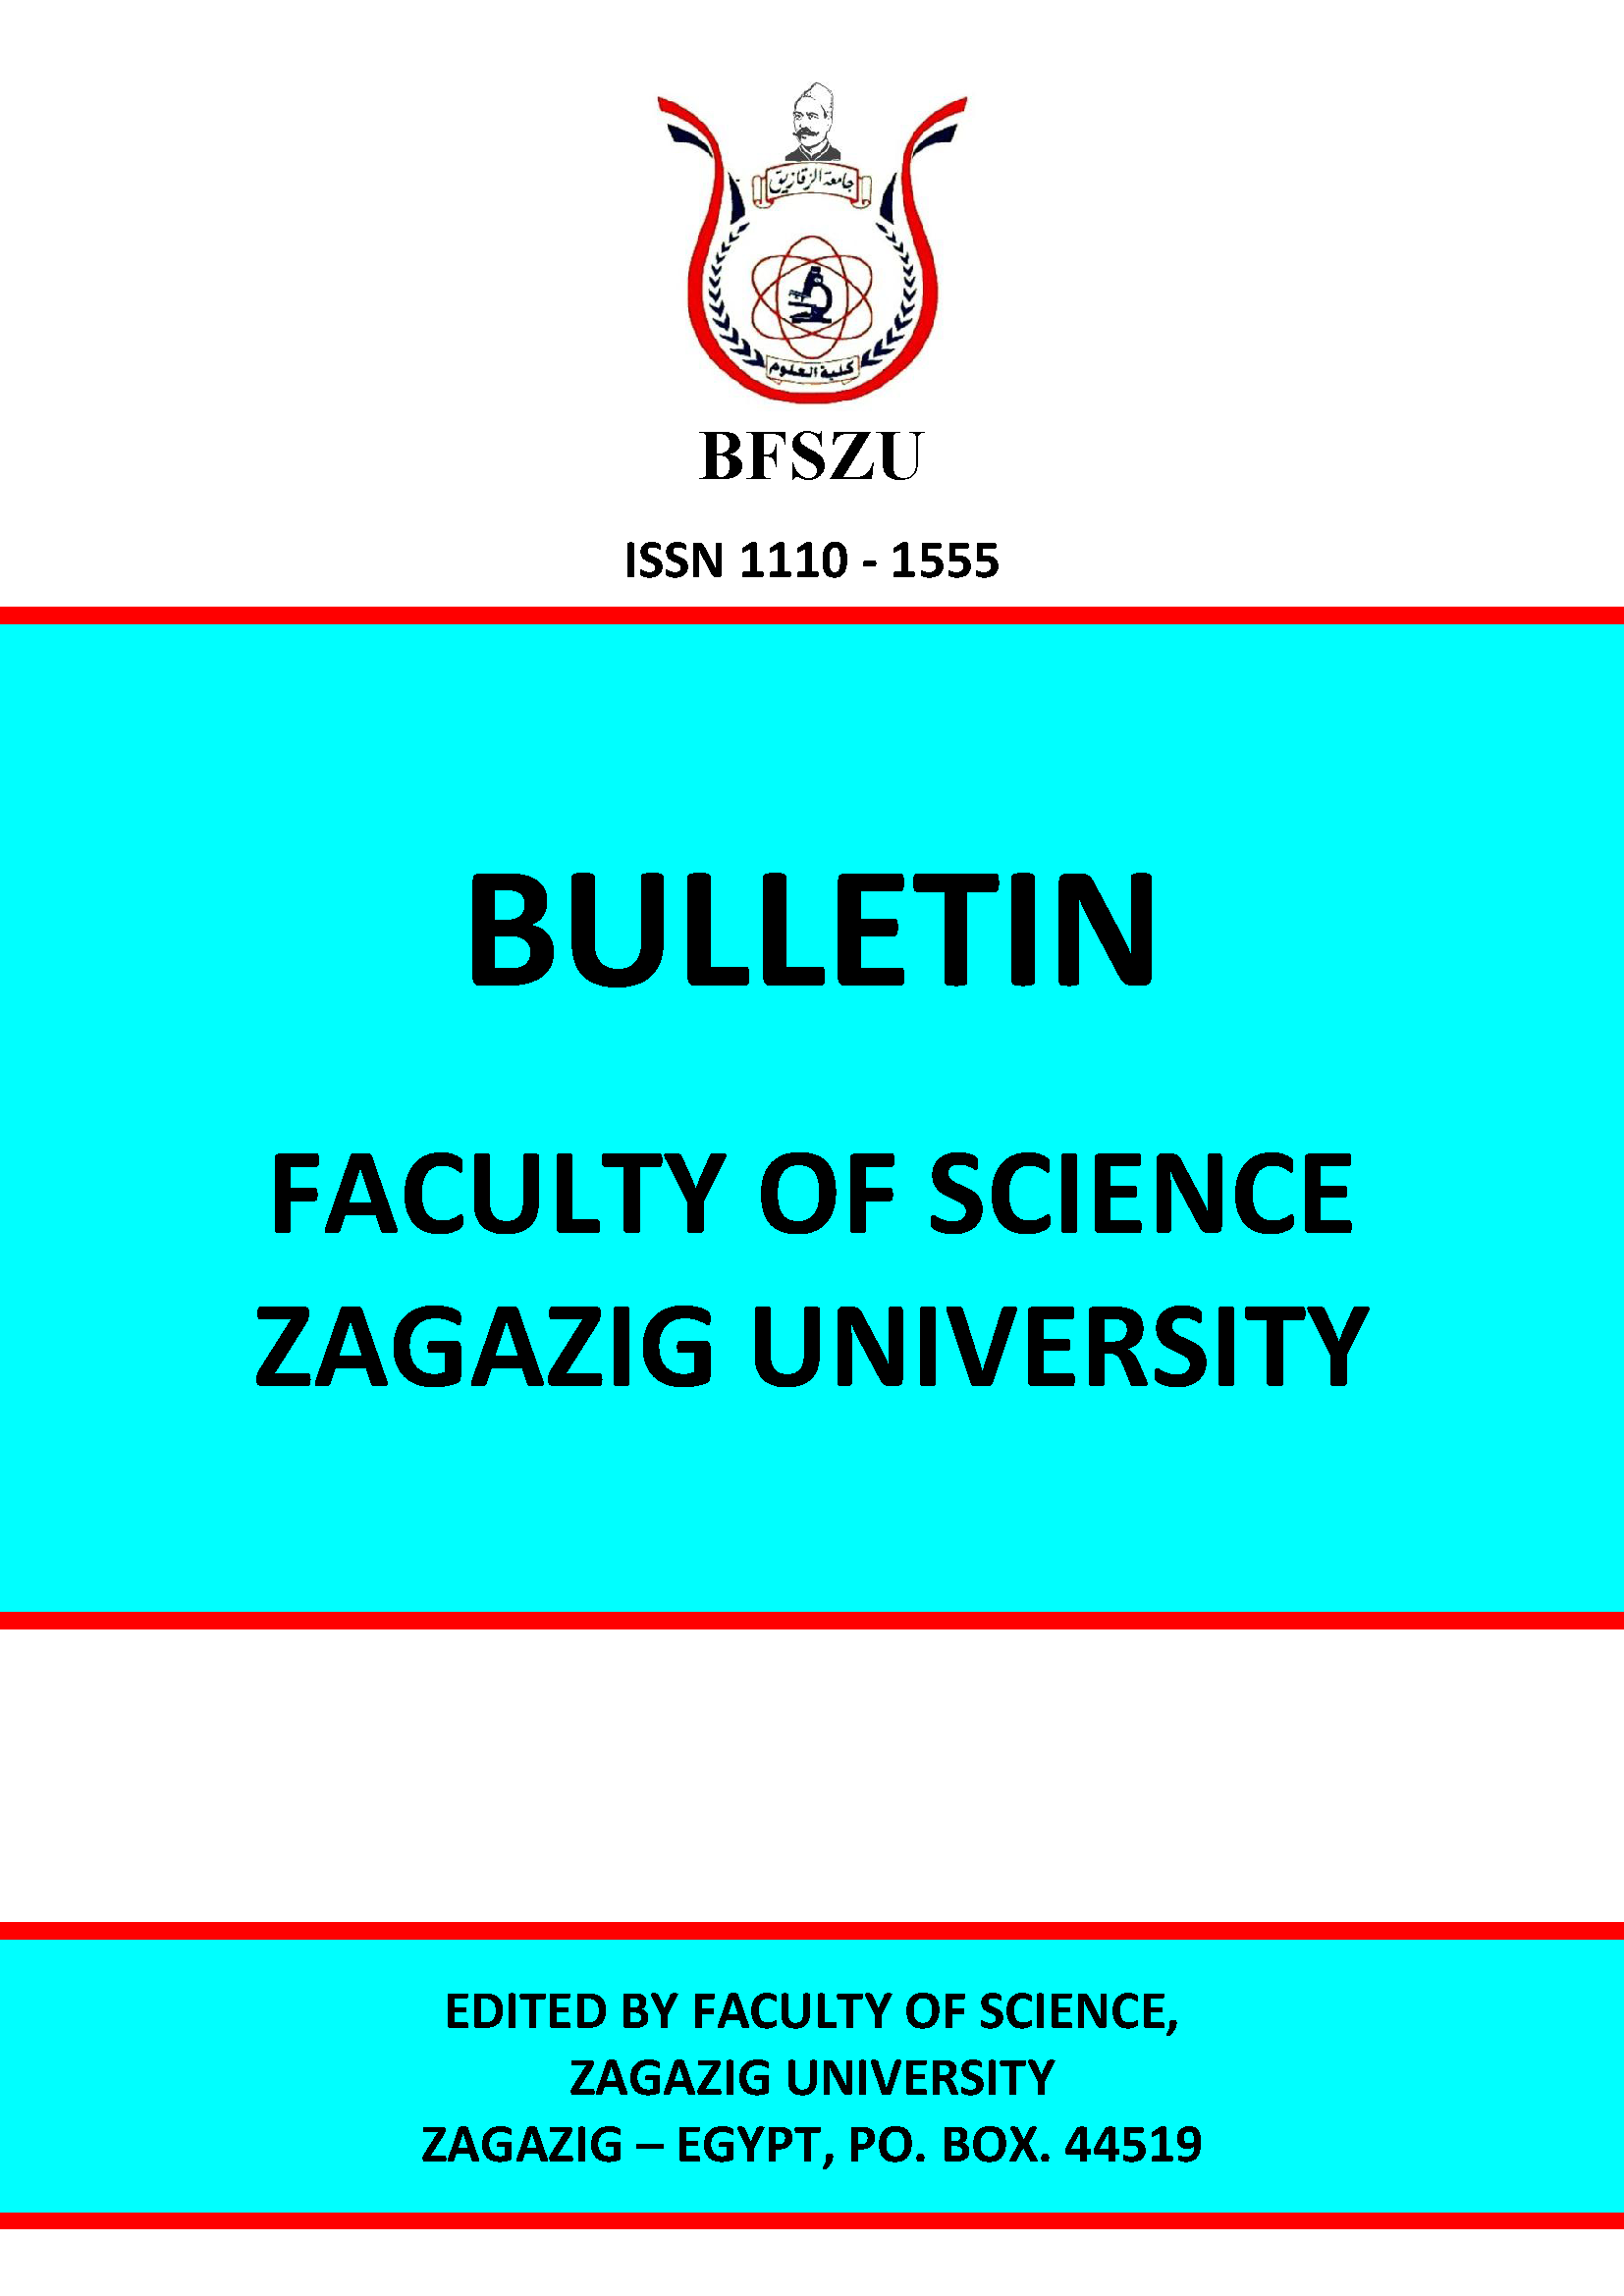 Bulletin of Faculty of Science, Zagazig University